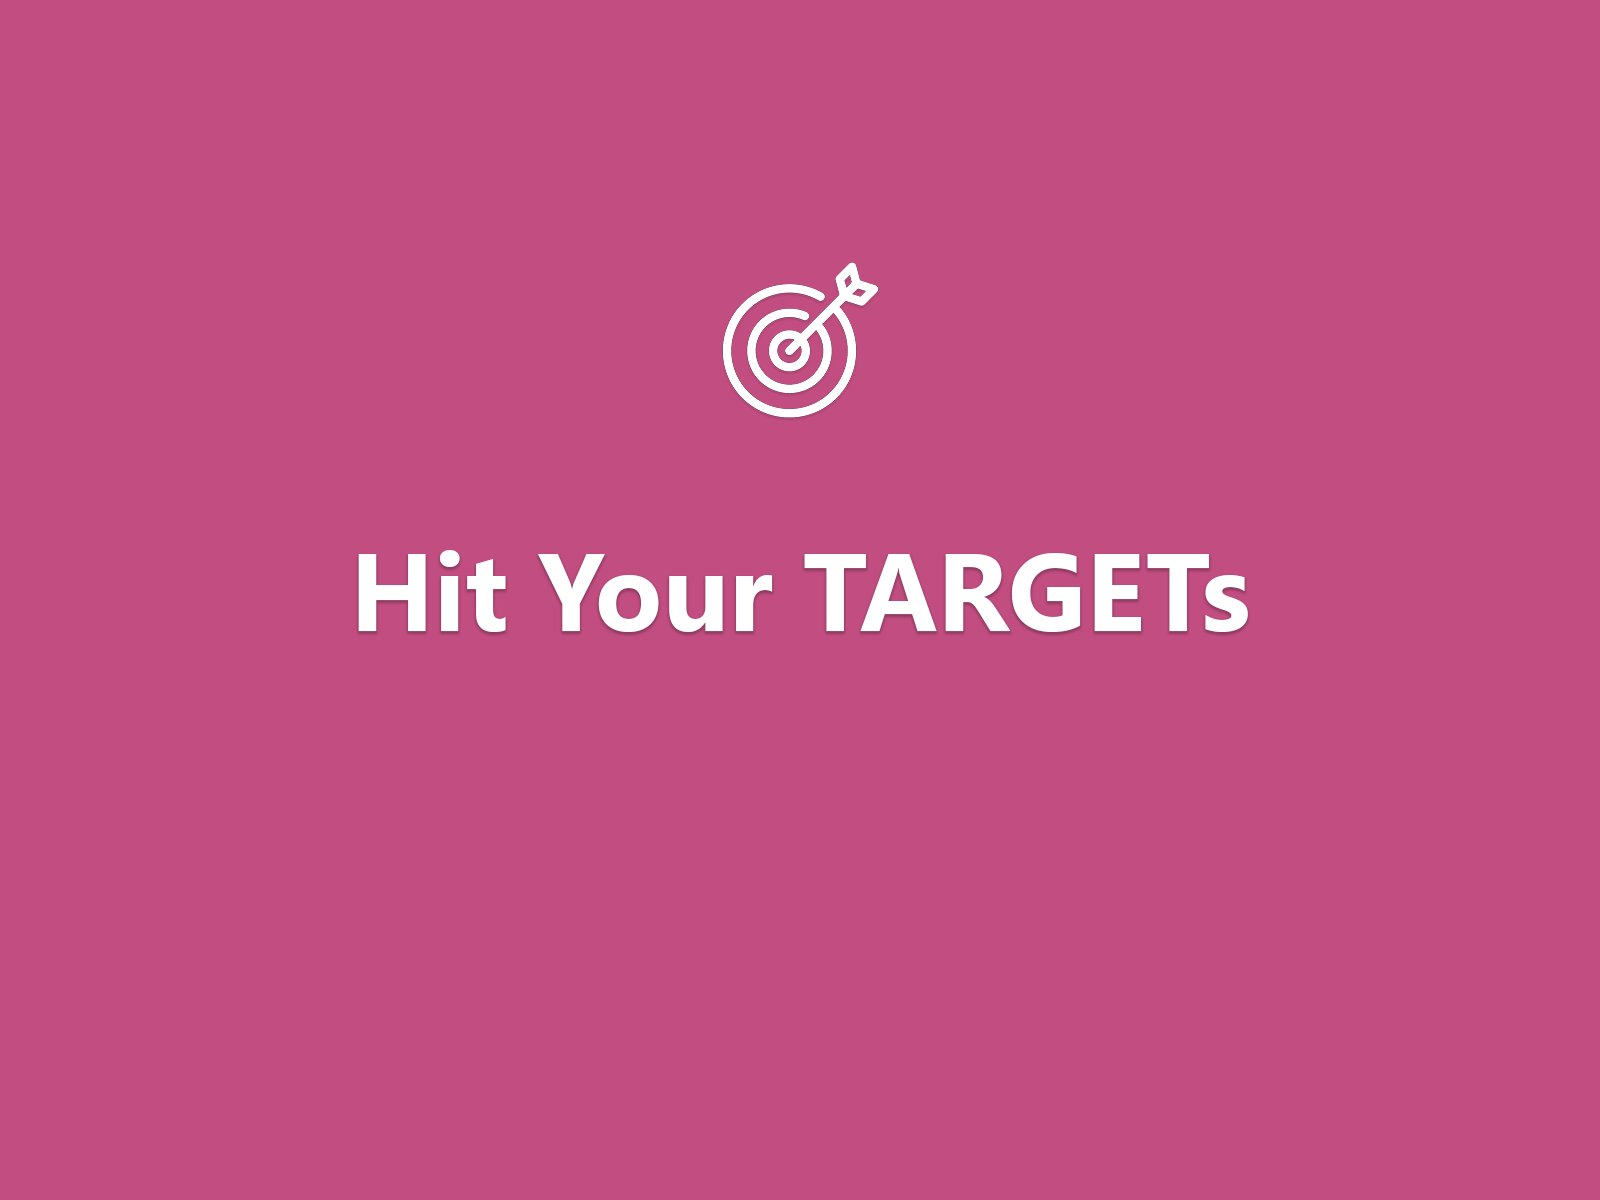 DCS_Hit_Your_TARGETs_featured_IMG_1600x1200.png